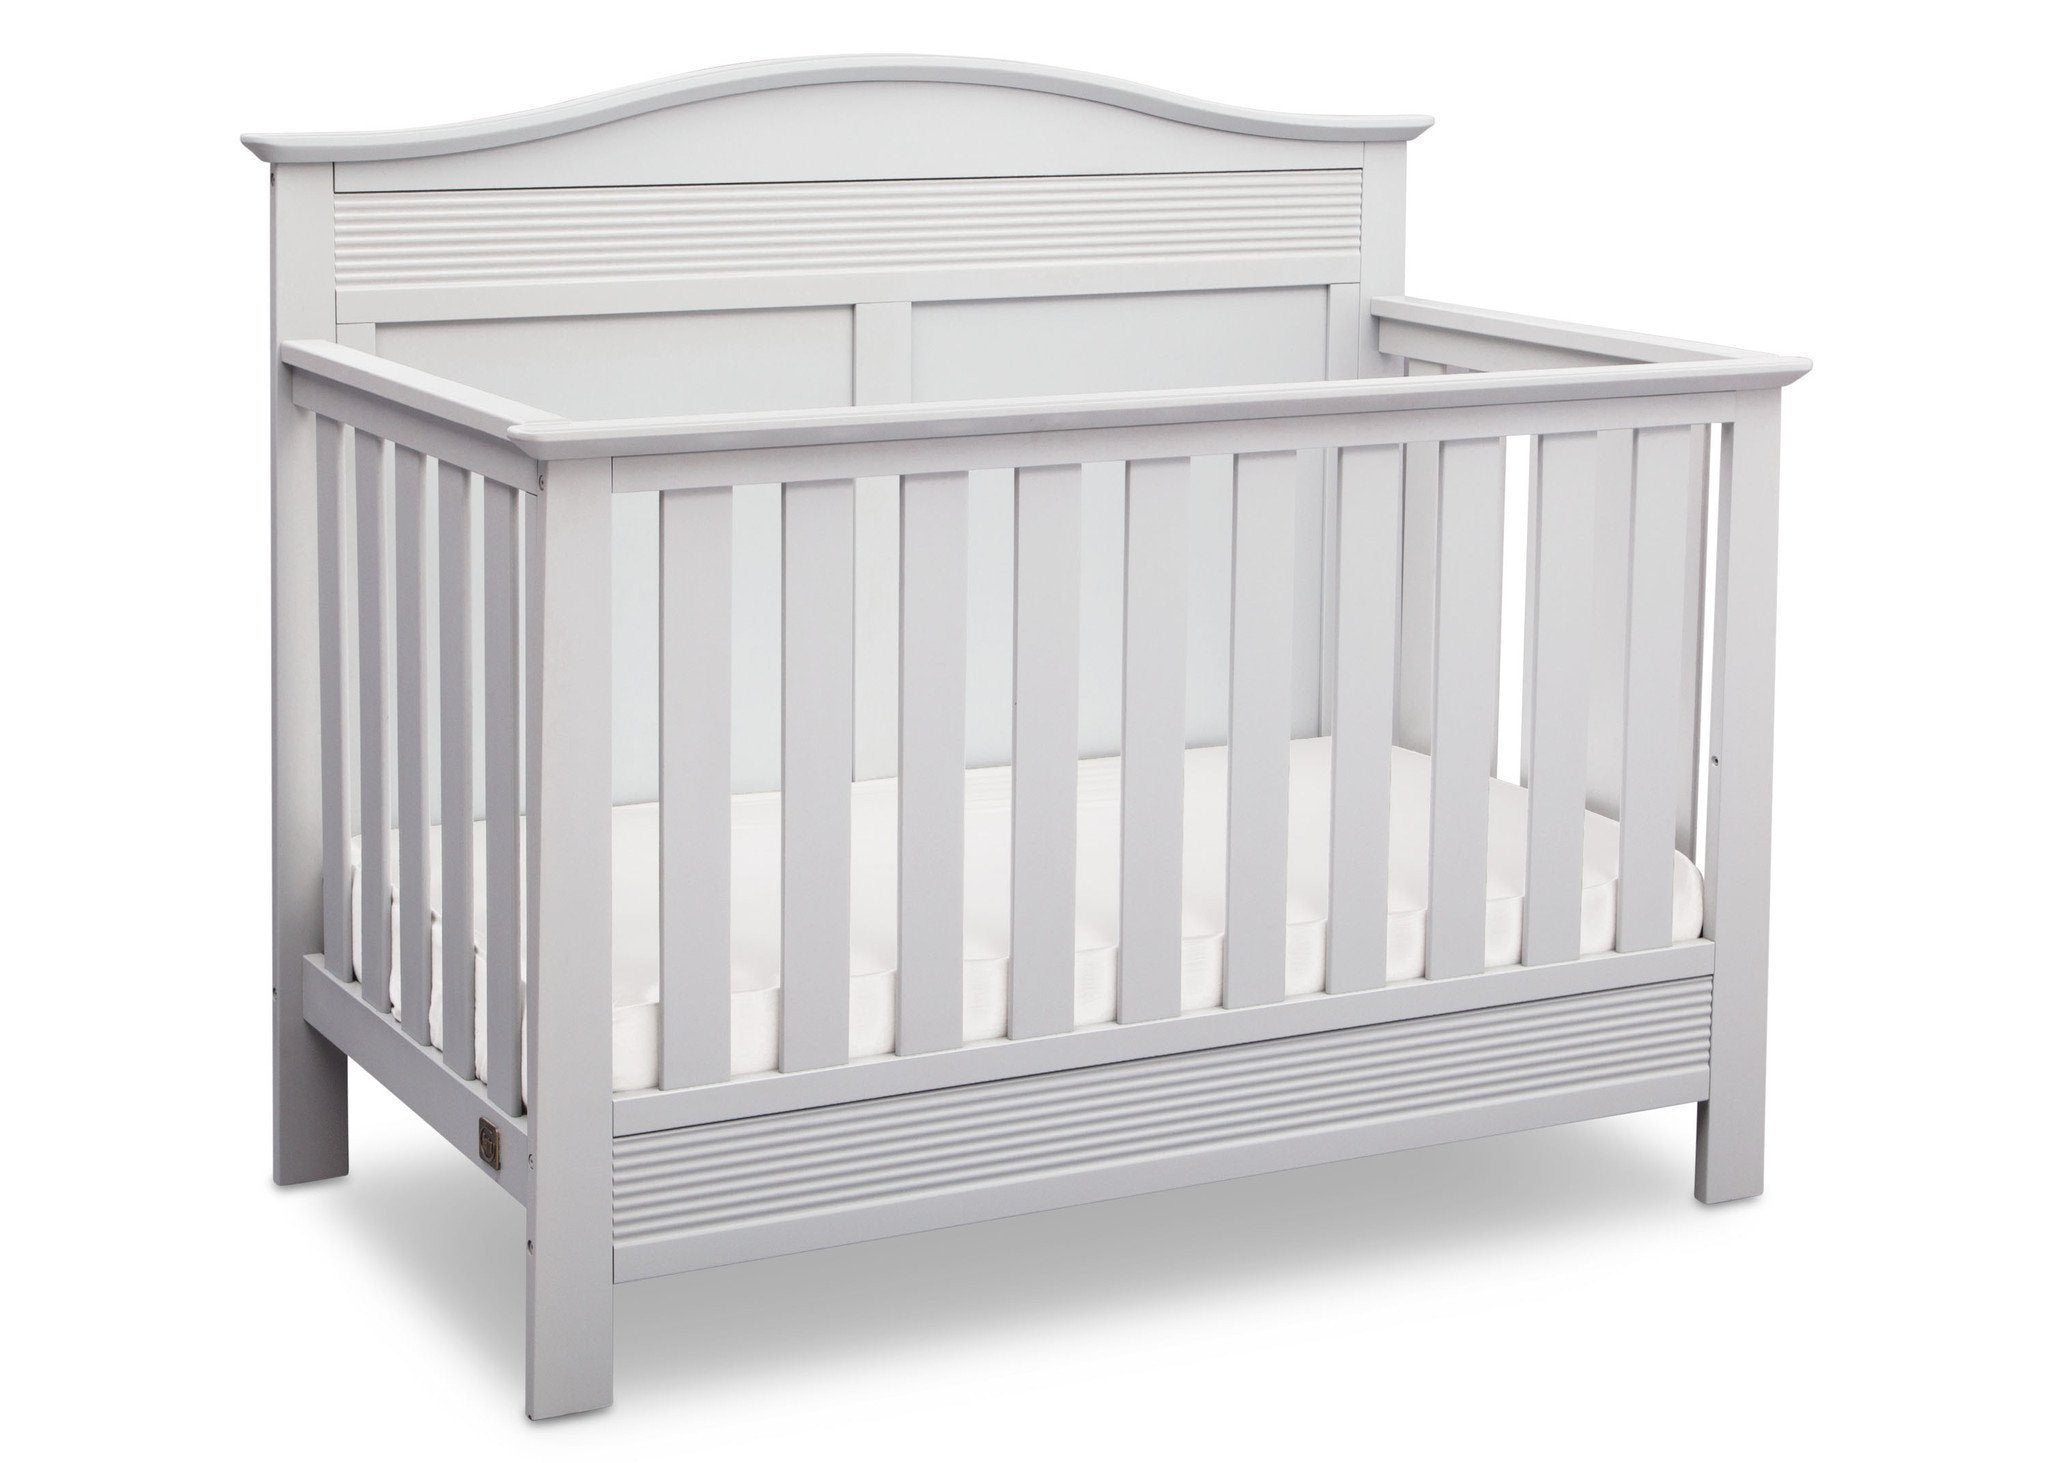 Serta Bianca White (130) Barrett 4-in-1 Convertible Crib, Right Crib View b2b